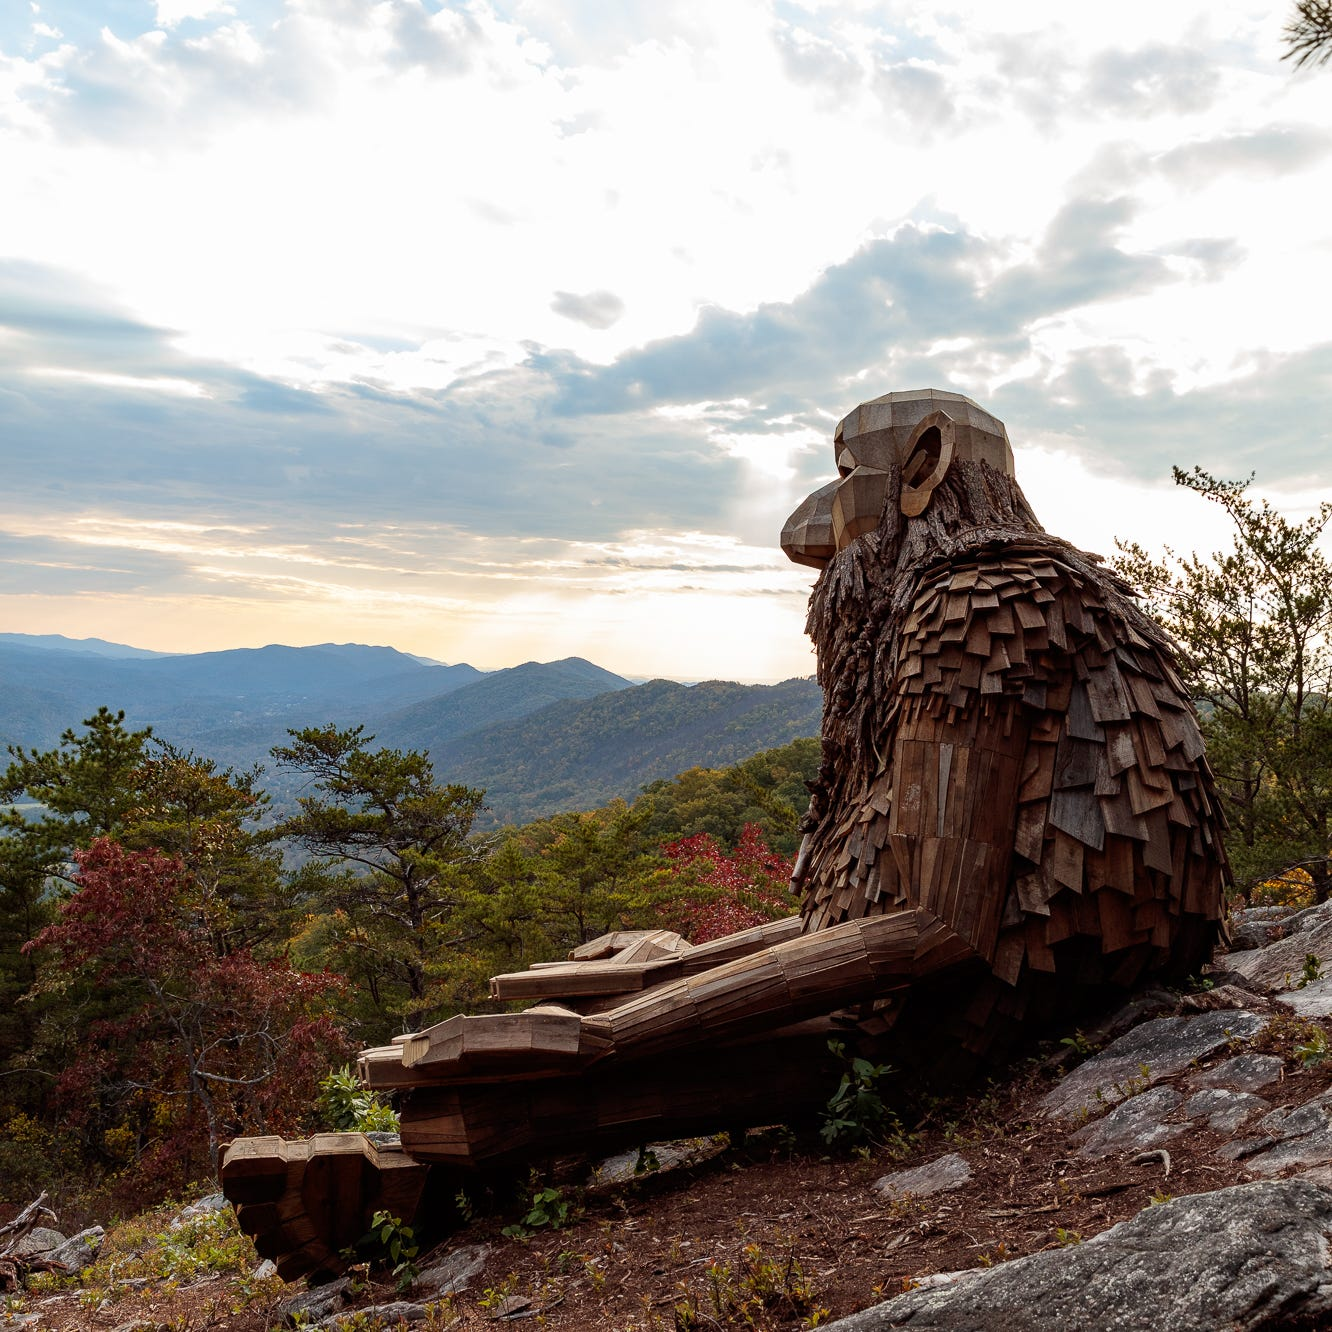 Meet 'Leo The Enlightened' — a spiritual troll sculpture towering high in the Smokies